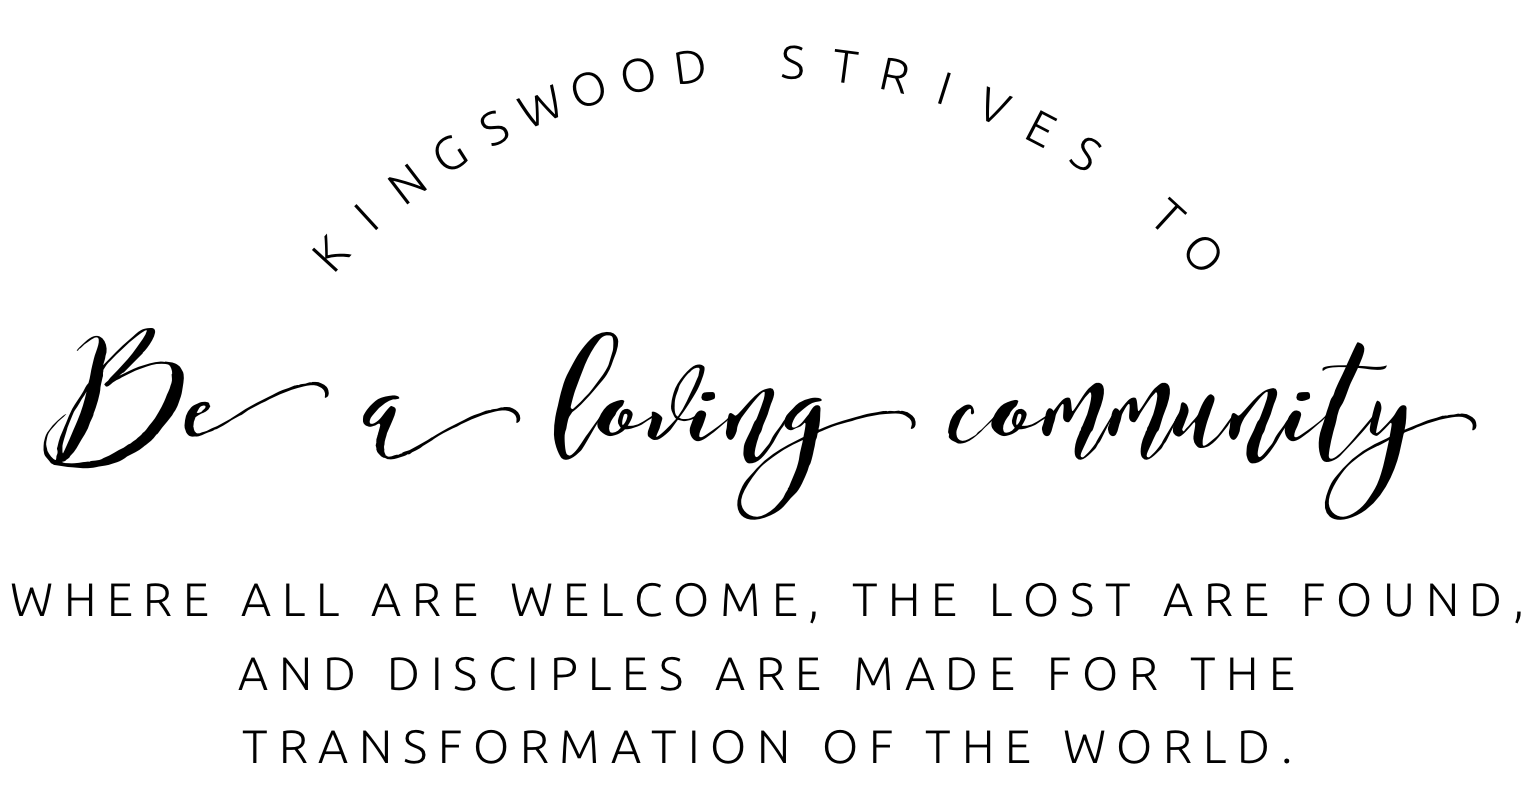 Kingswood strives to be a loving community where all are welcome, the lost are found, and disciples are made for the transformation of the world.